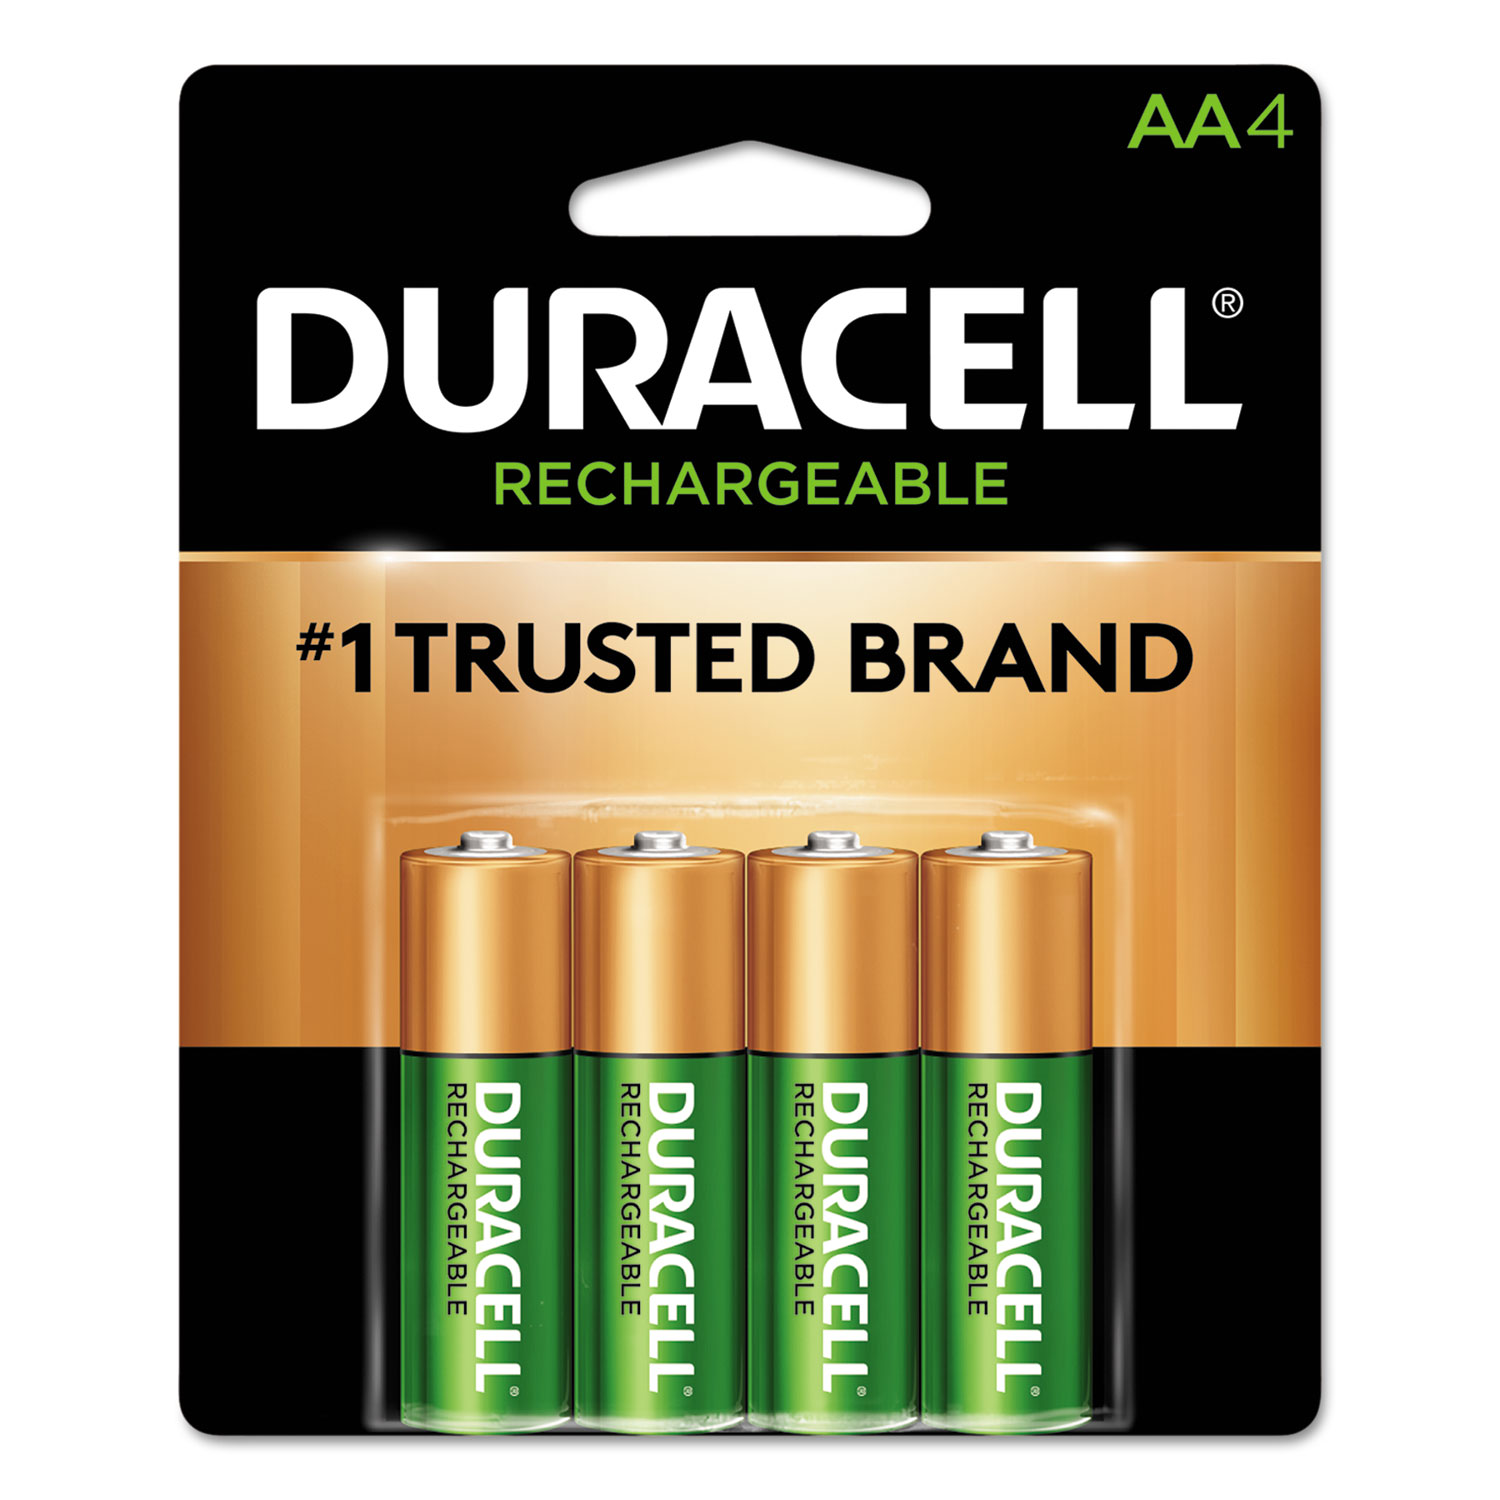 Rechargeable StayCharged NiMH Batteries, AA, 4/Pack